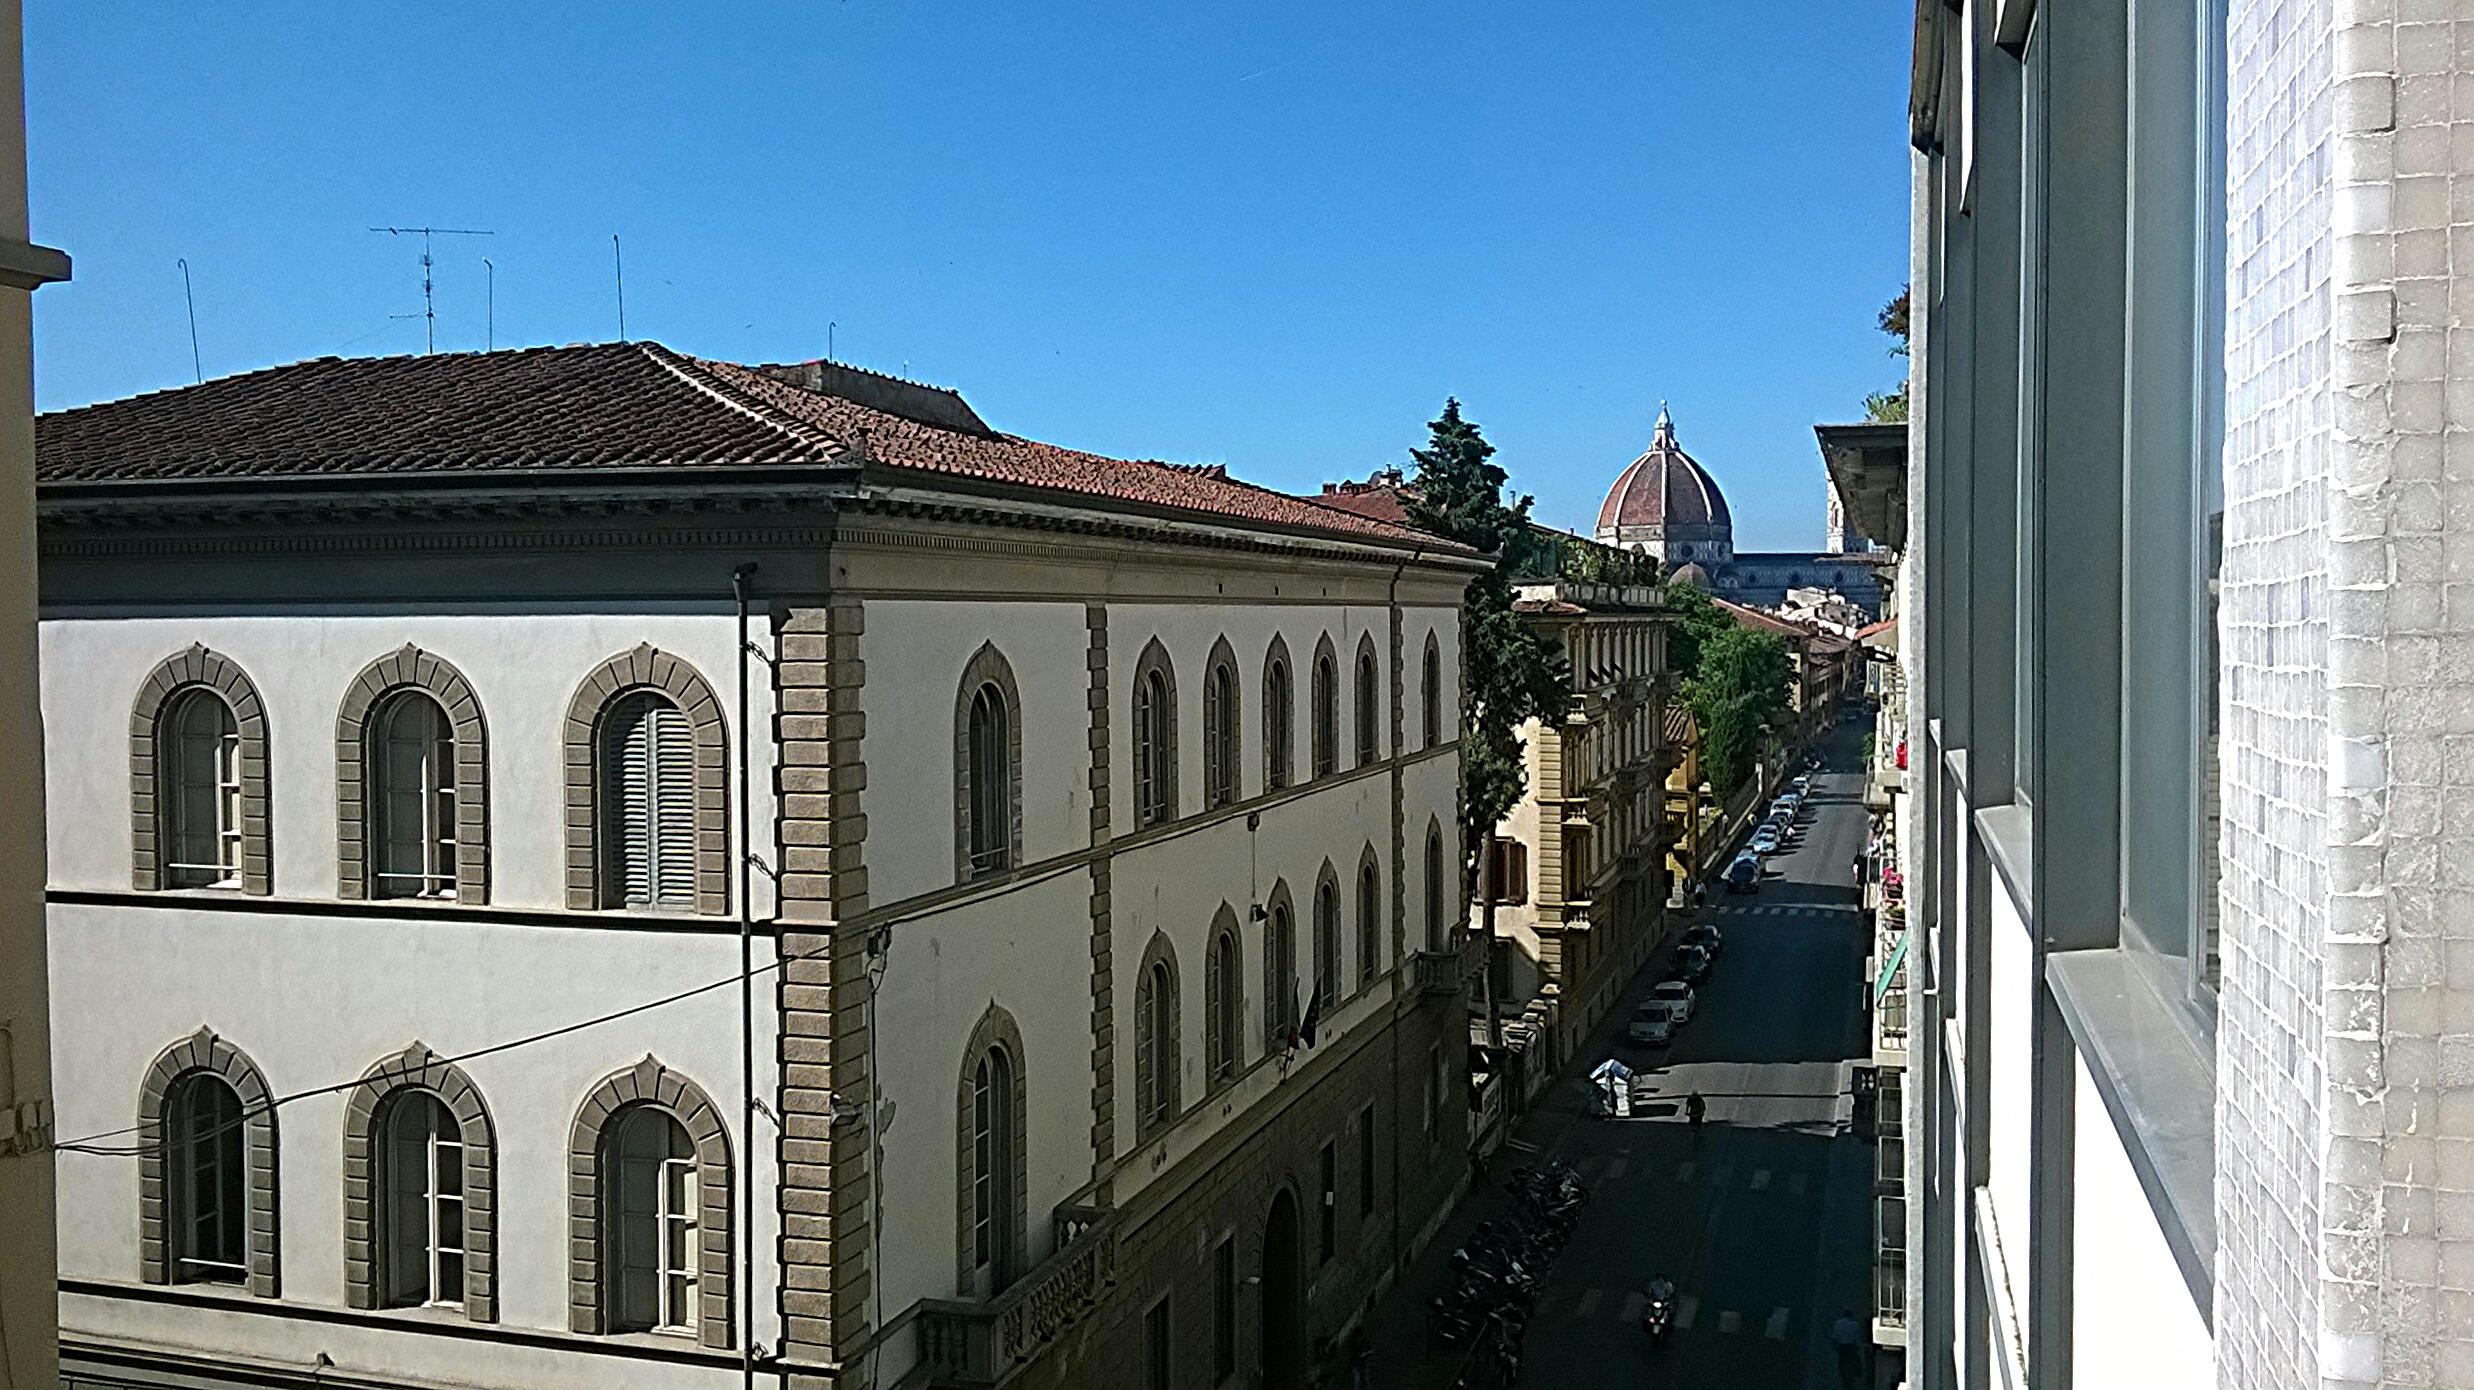 Dormire low cost a firenze wow florence hostel trippando for Dormire low cost milano